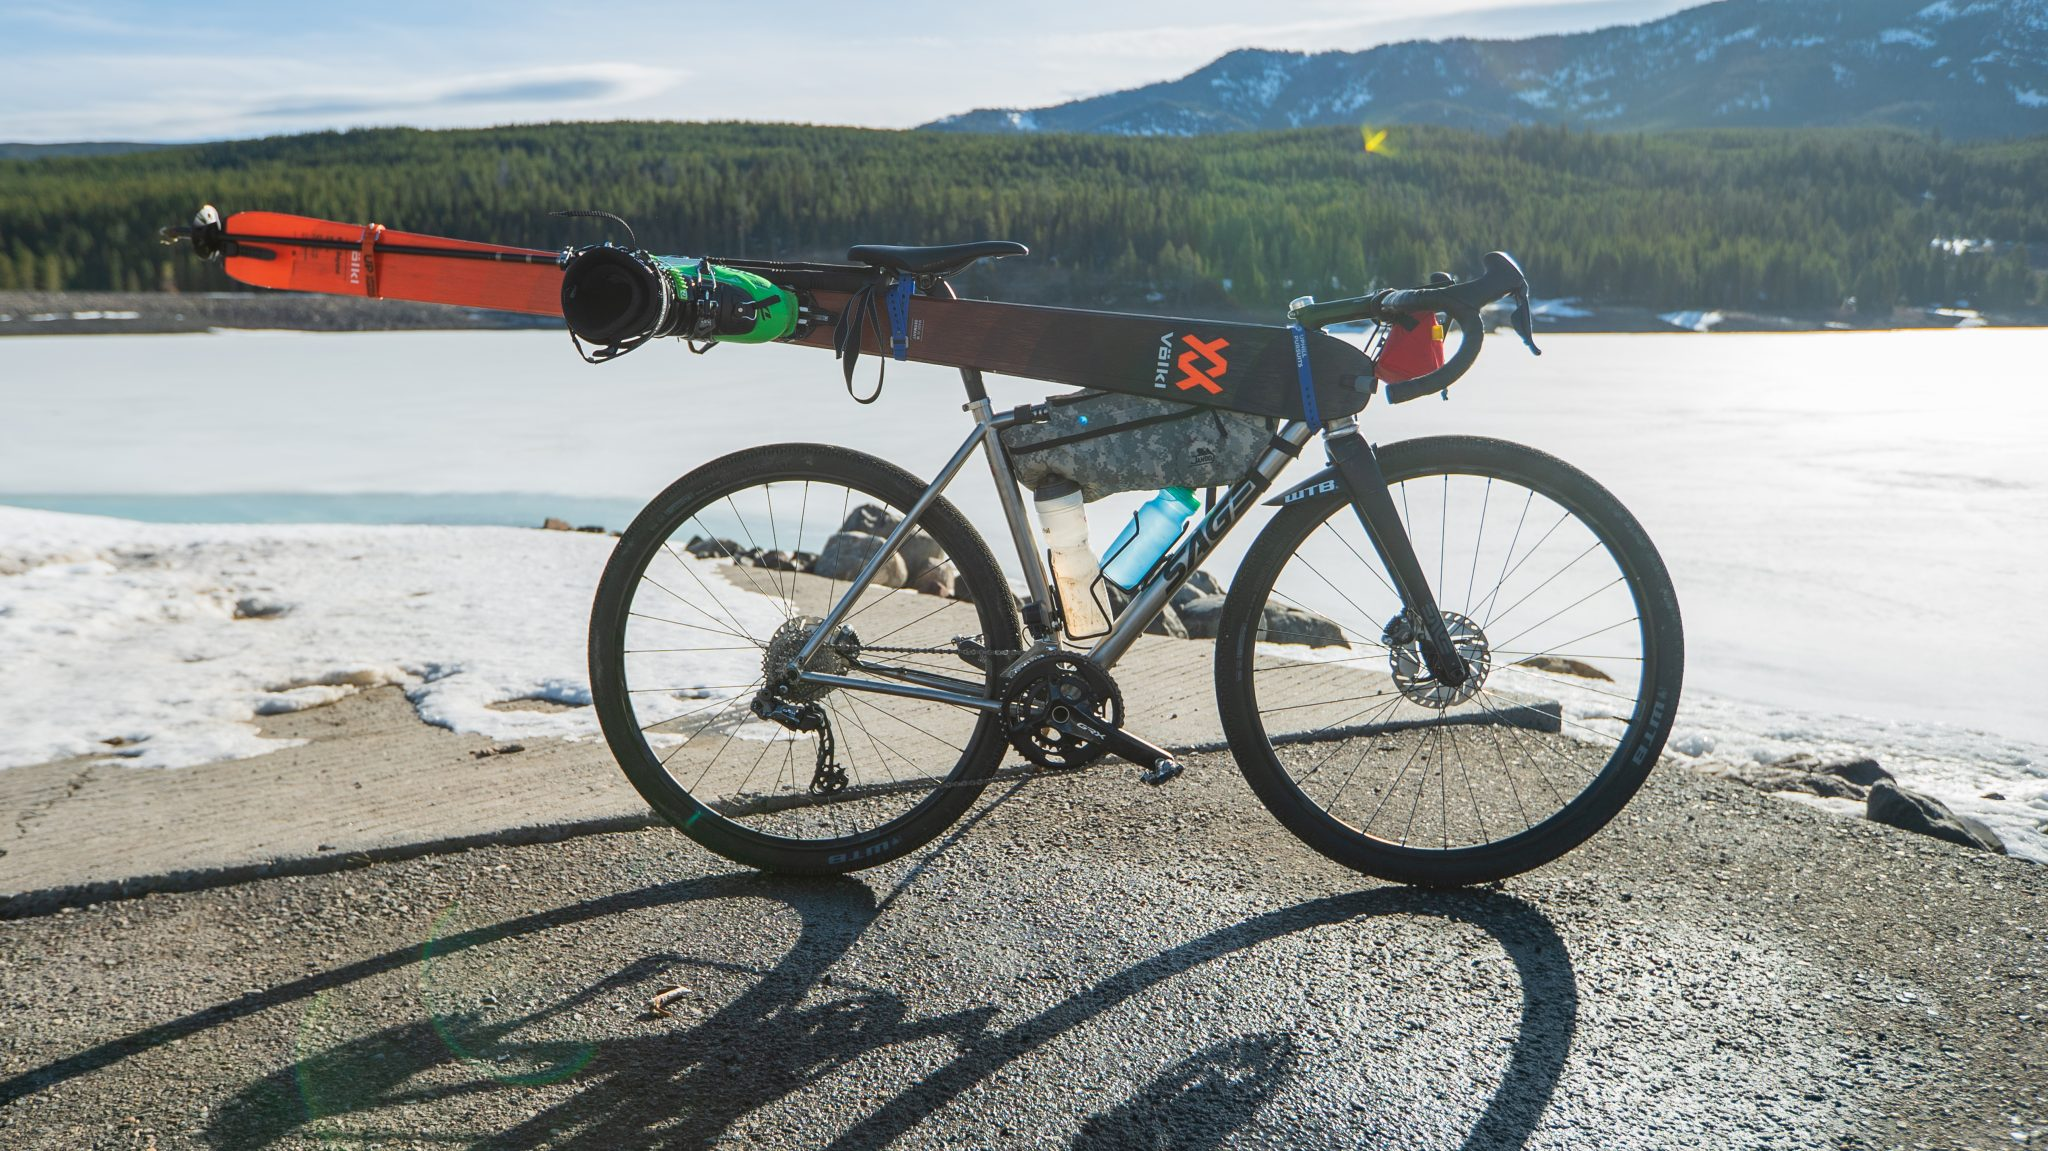 WHEN CYCLING MEETS BACKCOUNTRY SKIING: VIDEO